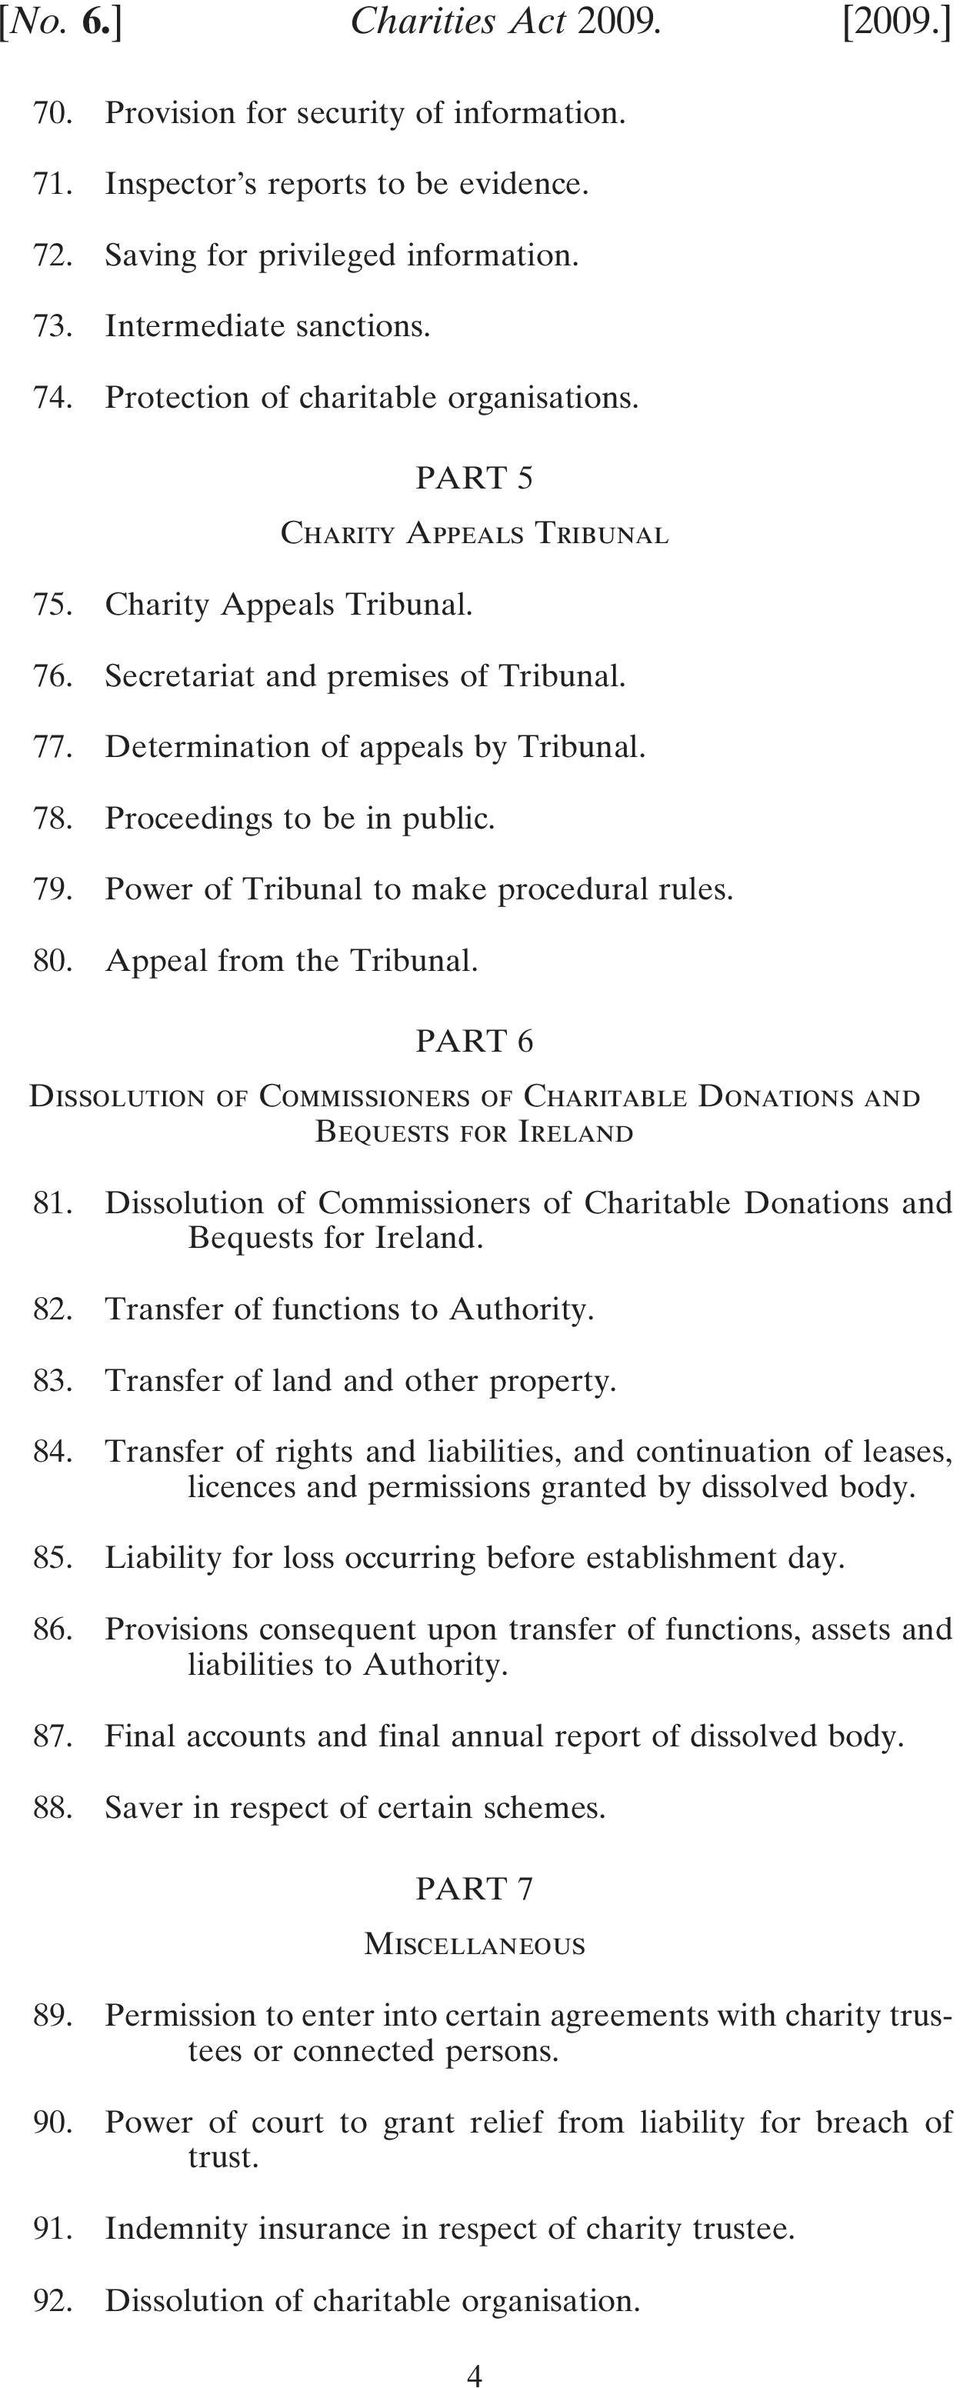 Proceedings to be in public. 79. Power of Tribunal to make procedural rules. 80. Appeal from the Tribunal. PART 6 Dissolution of Commissioners of Charitable Donations and Bequests for Ireland 81.